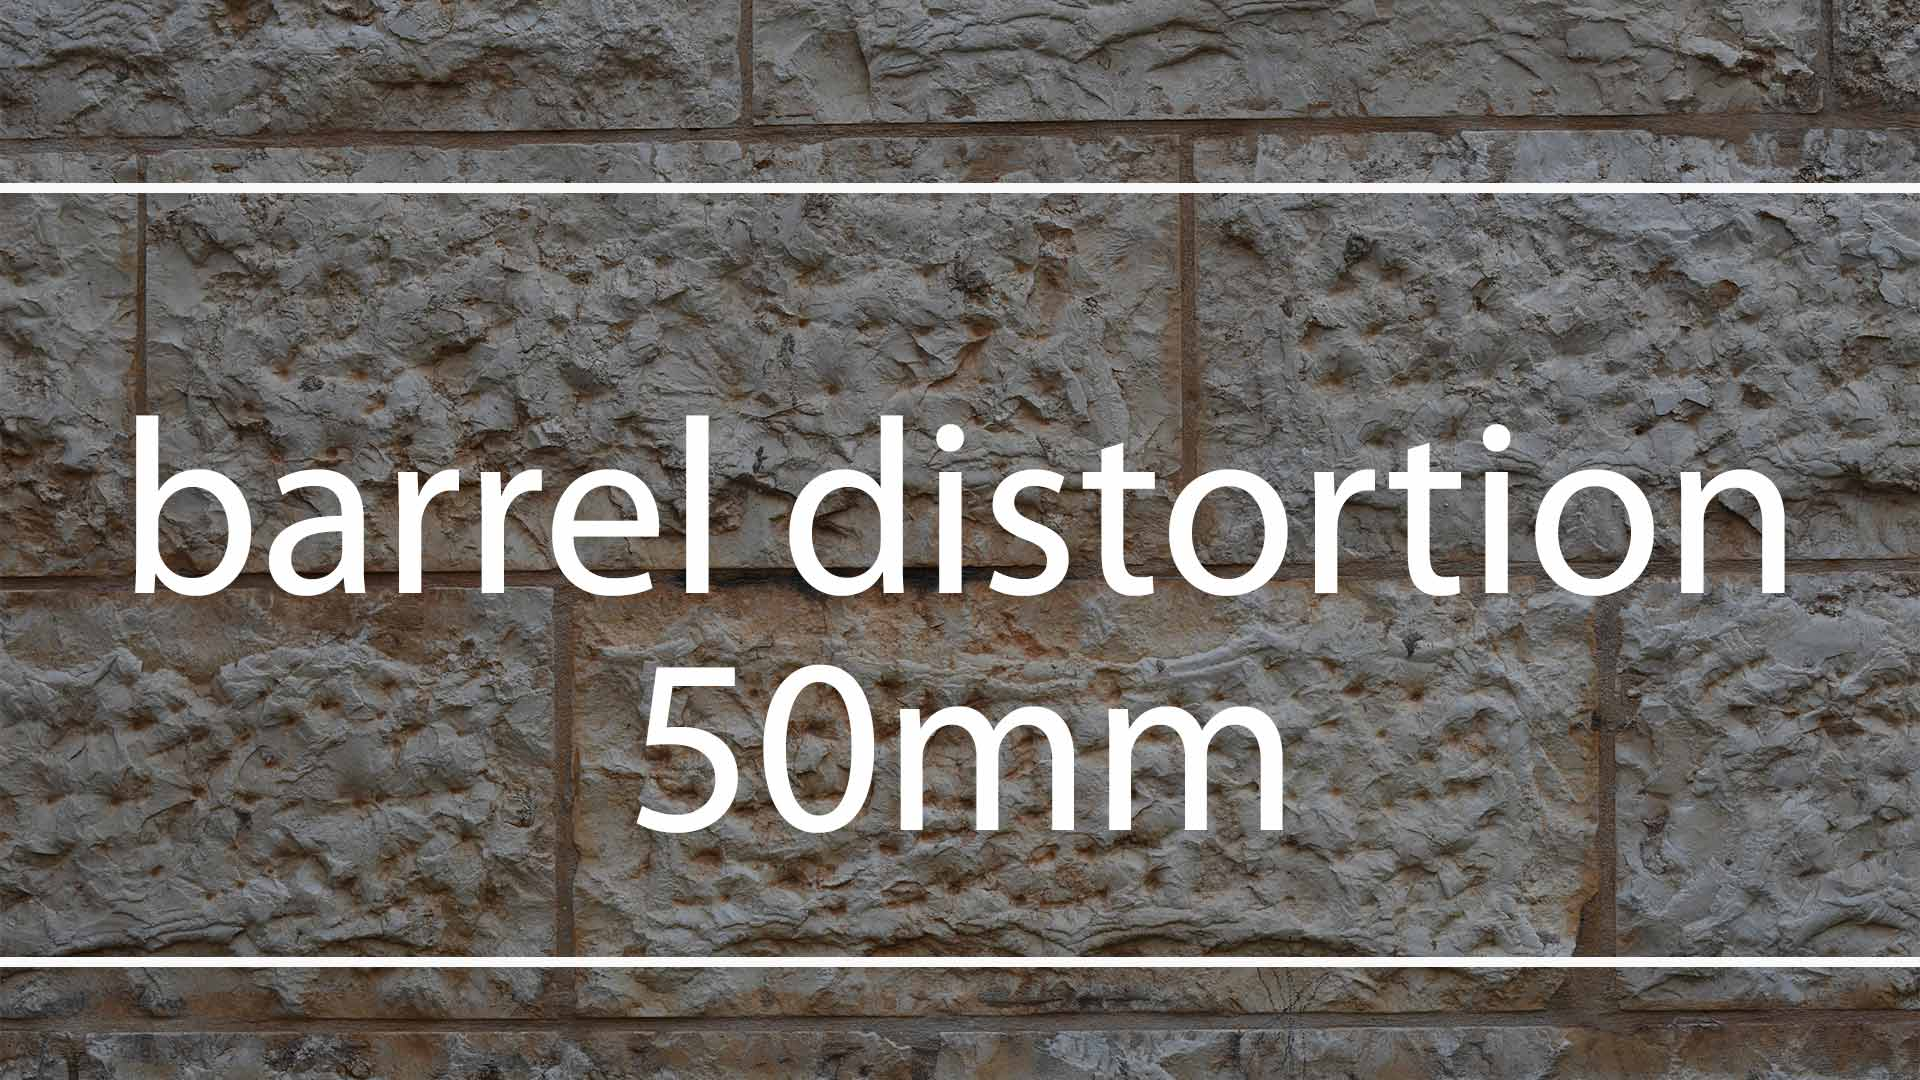 barrel-distortion-50mm